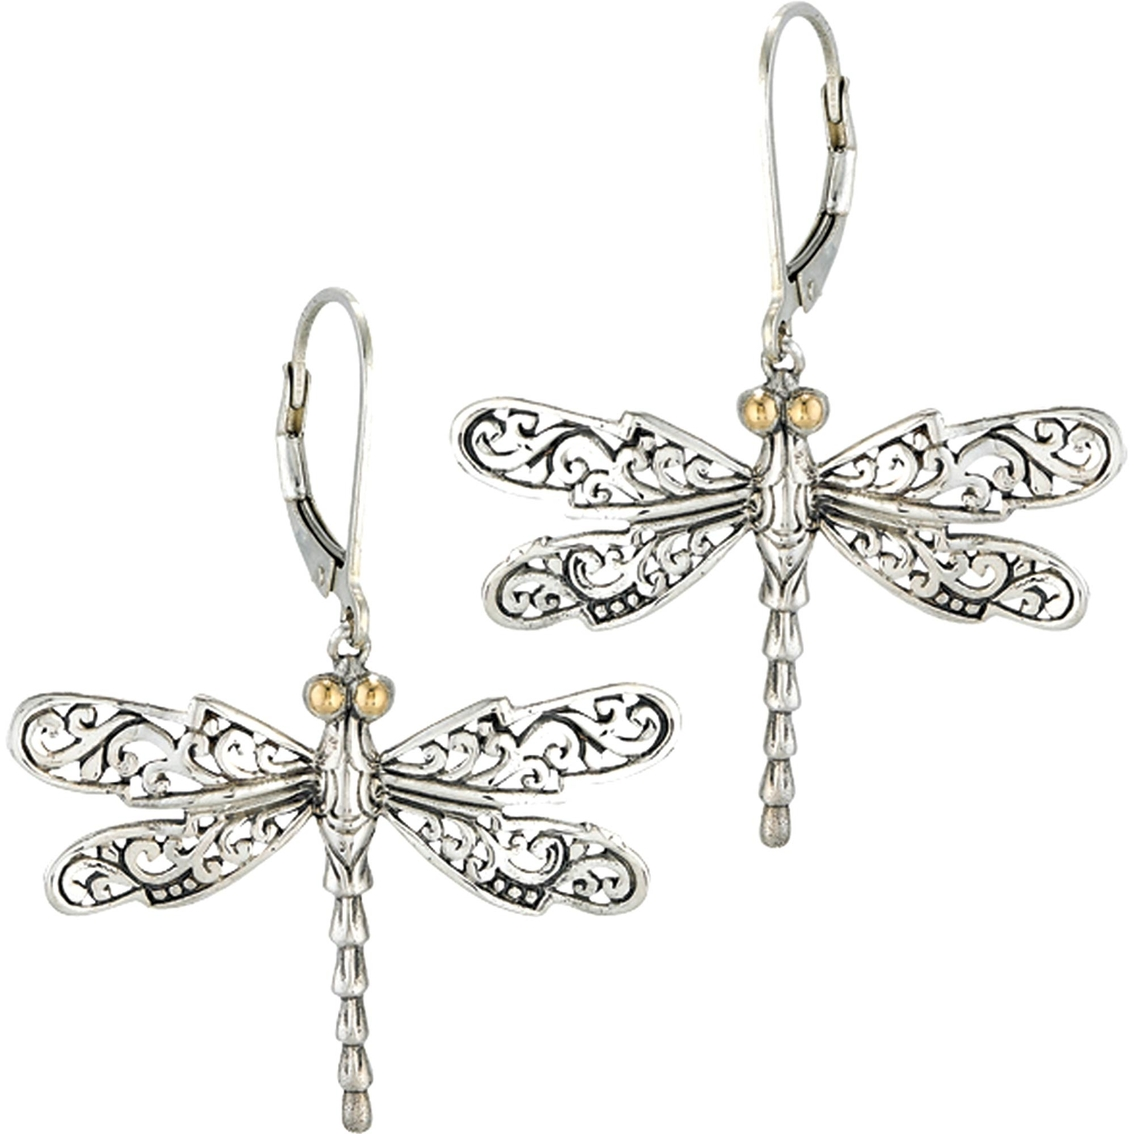 feda6f670d8c1 18K Yellow Gold Sterling Silver Bali Design Dragonfly Earrings with White  Topaz